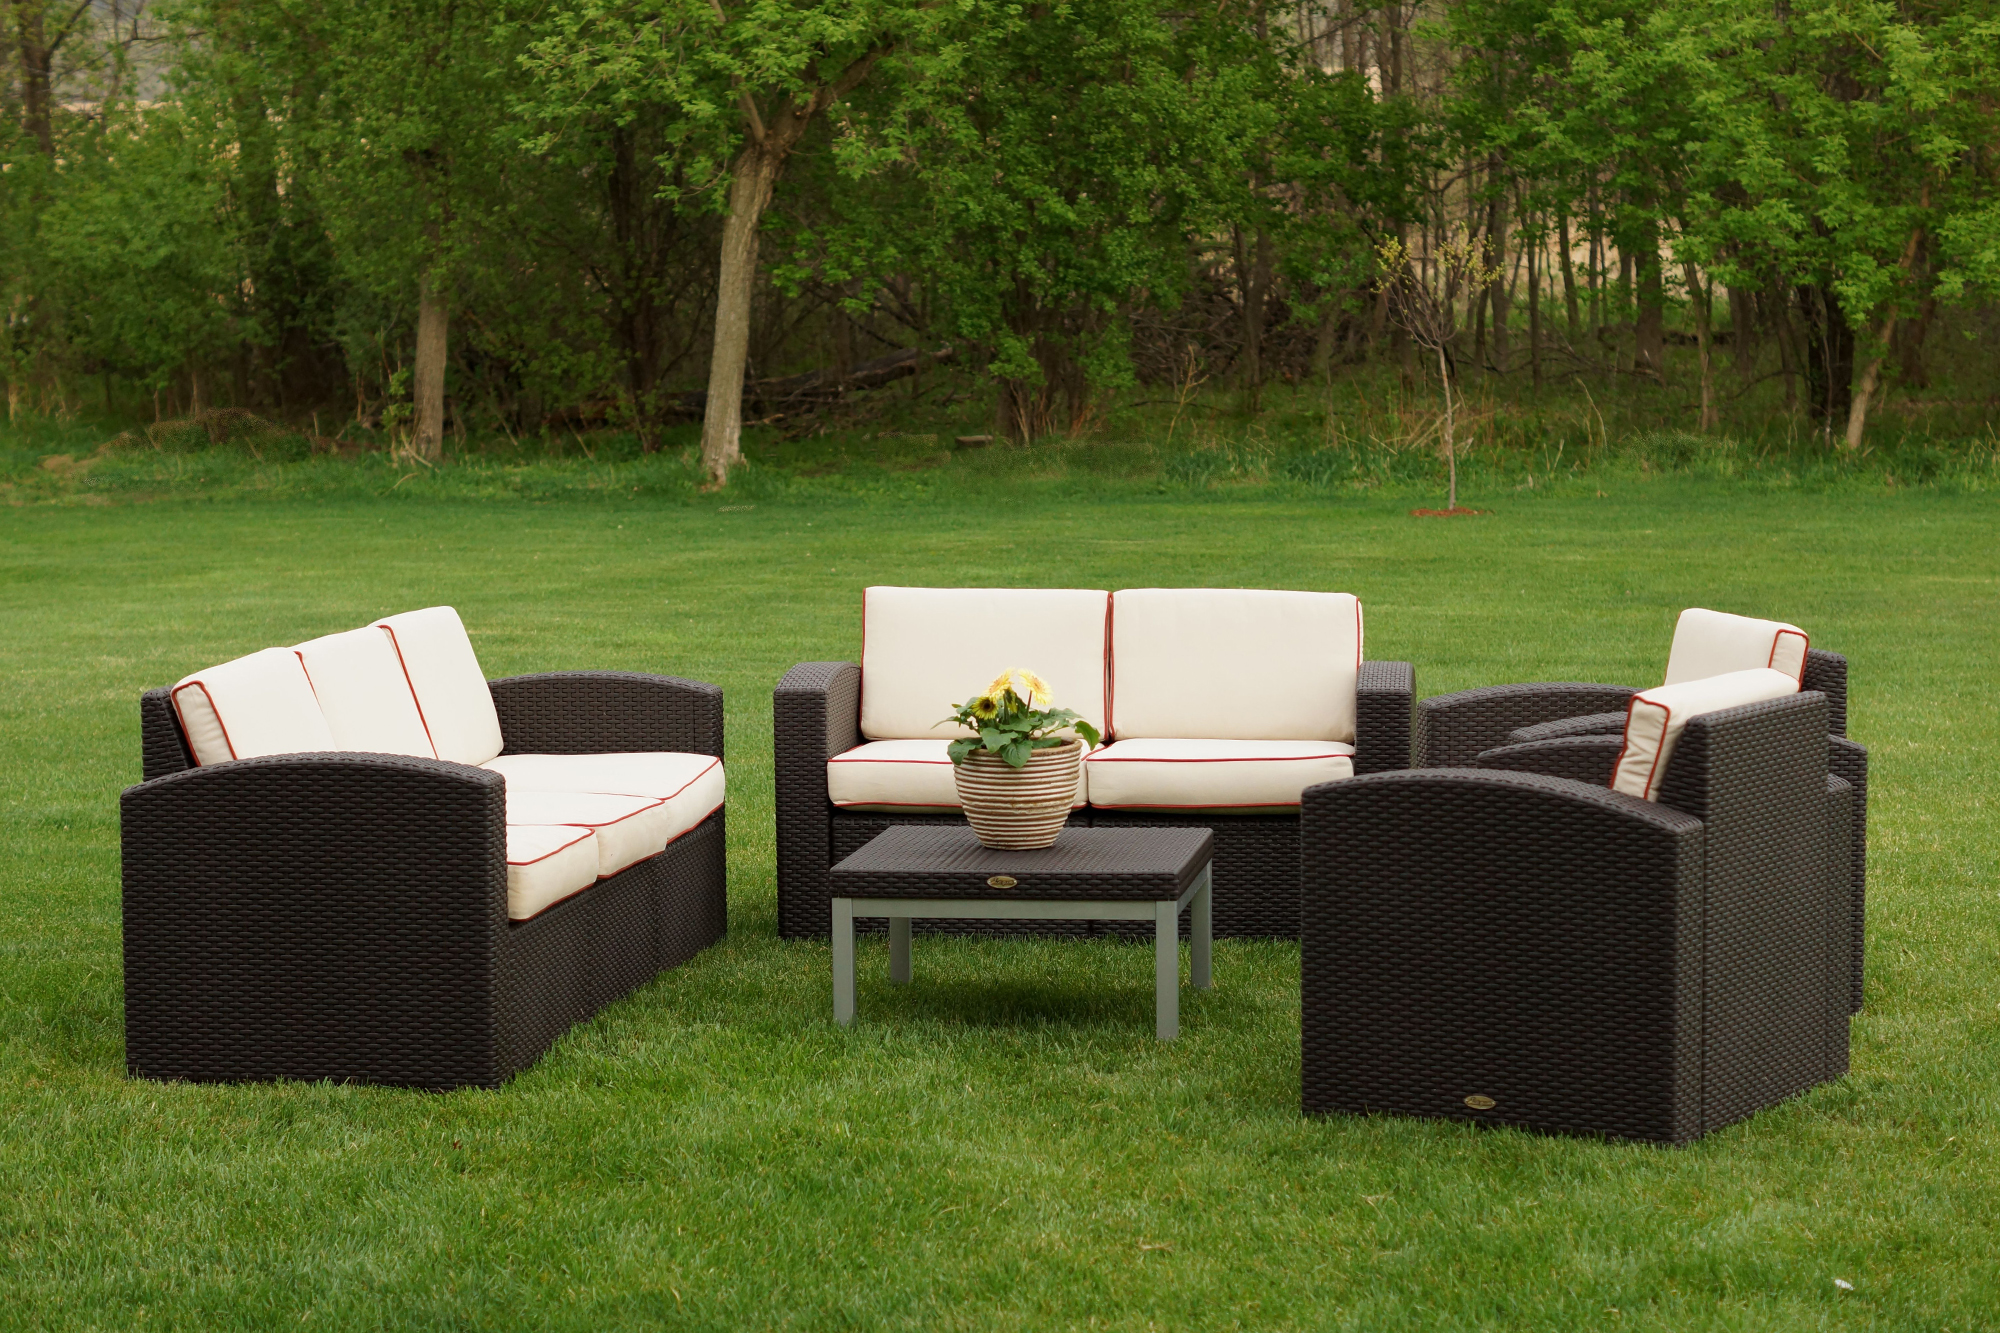 Cielo Patio Sofa Loveseat 2 Chairs & Table Package Annie s